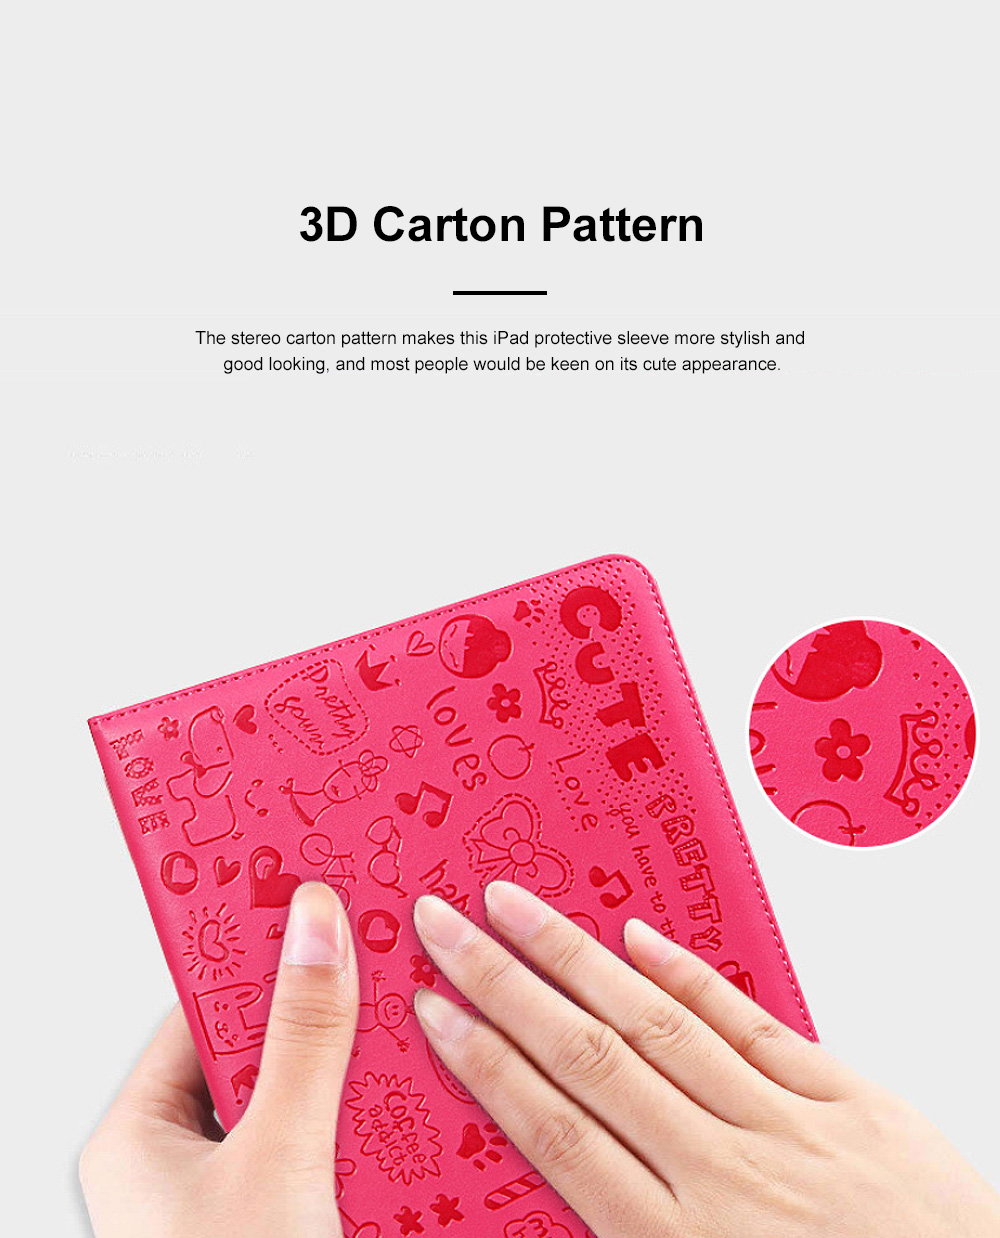 Creative Cute Stereo Cartoon Pattern iPad Protective Sleeve, Smooth PU Leather Tablet Computer Protection Case 3